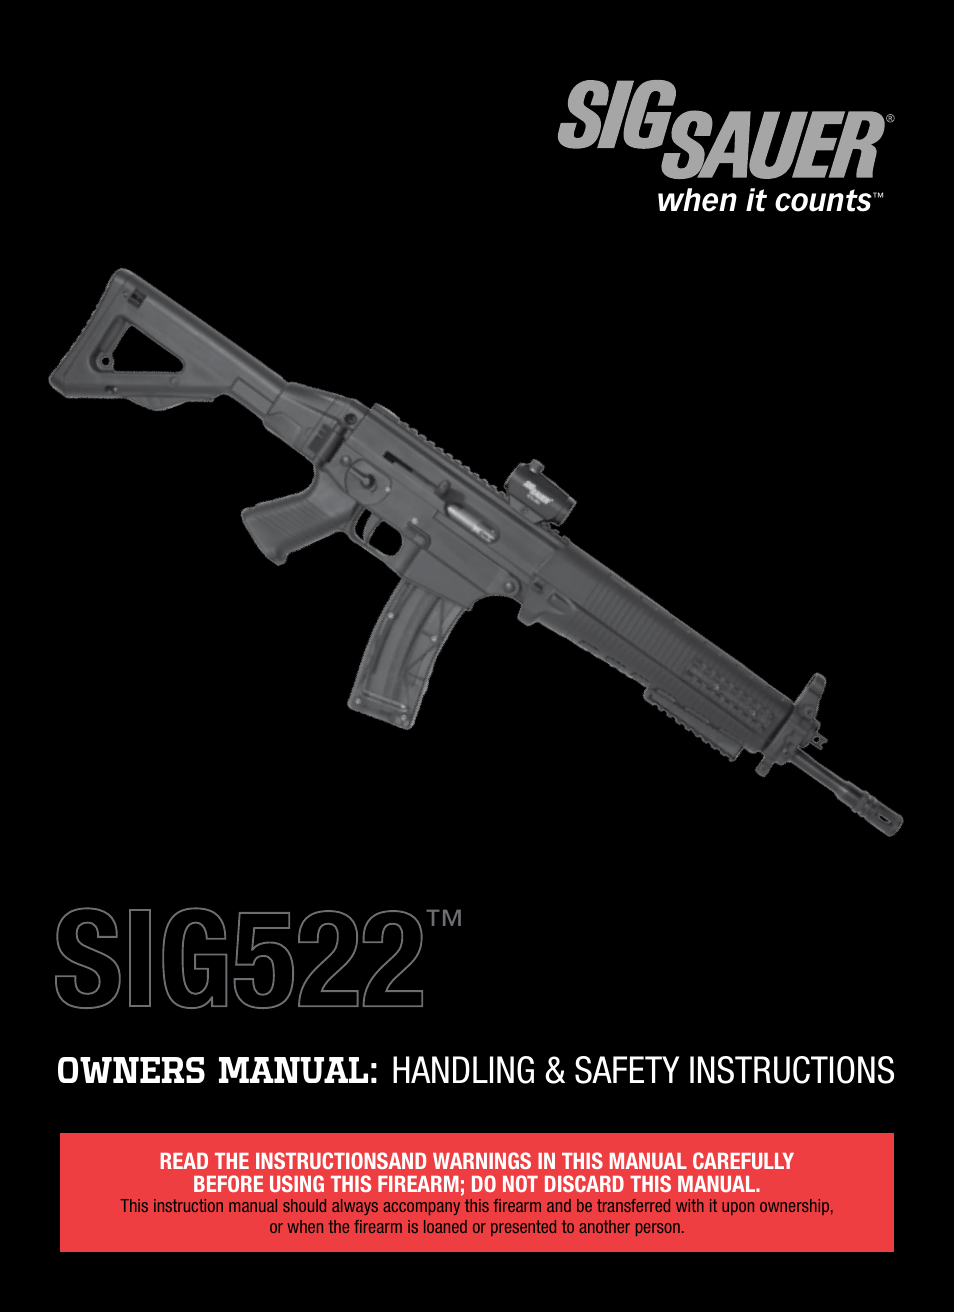 sig sauer sig522 rifle user manual 31 pages rh manualsdir com sig sauer p210 owner's manual sig sauer p210 owner's manual